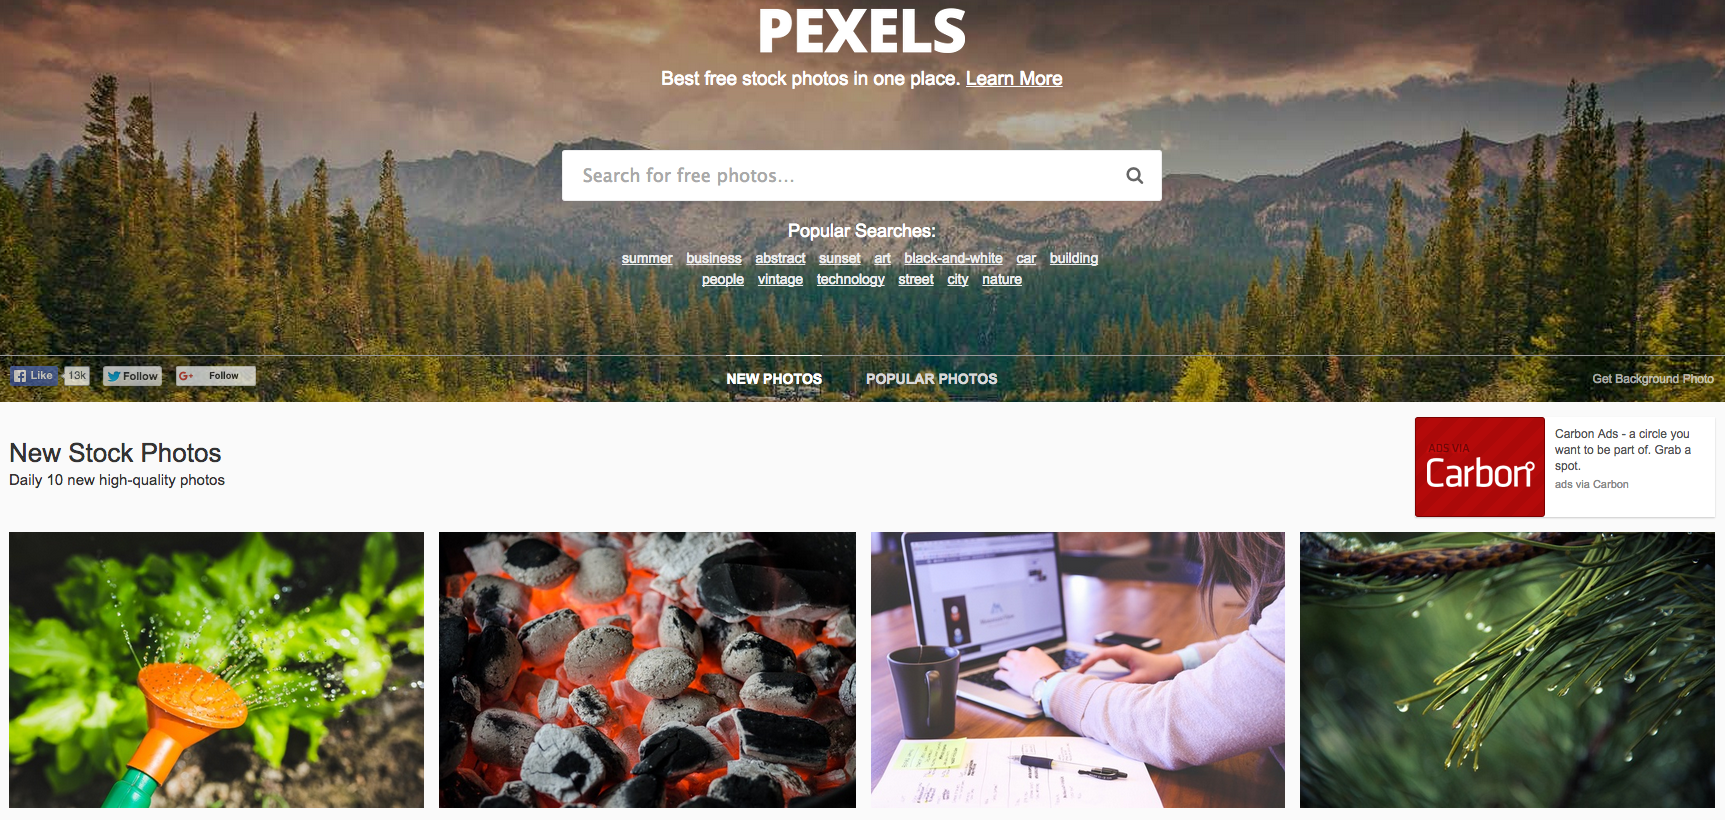 Over 3,500 free stock photos to choose from.